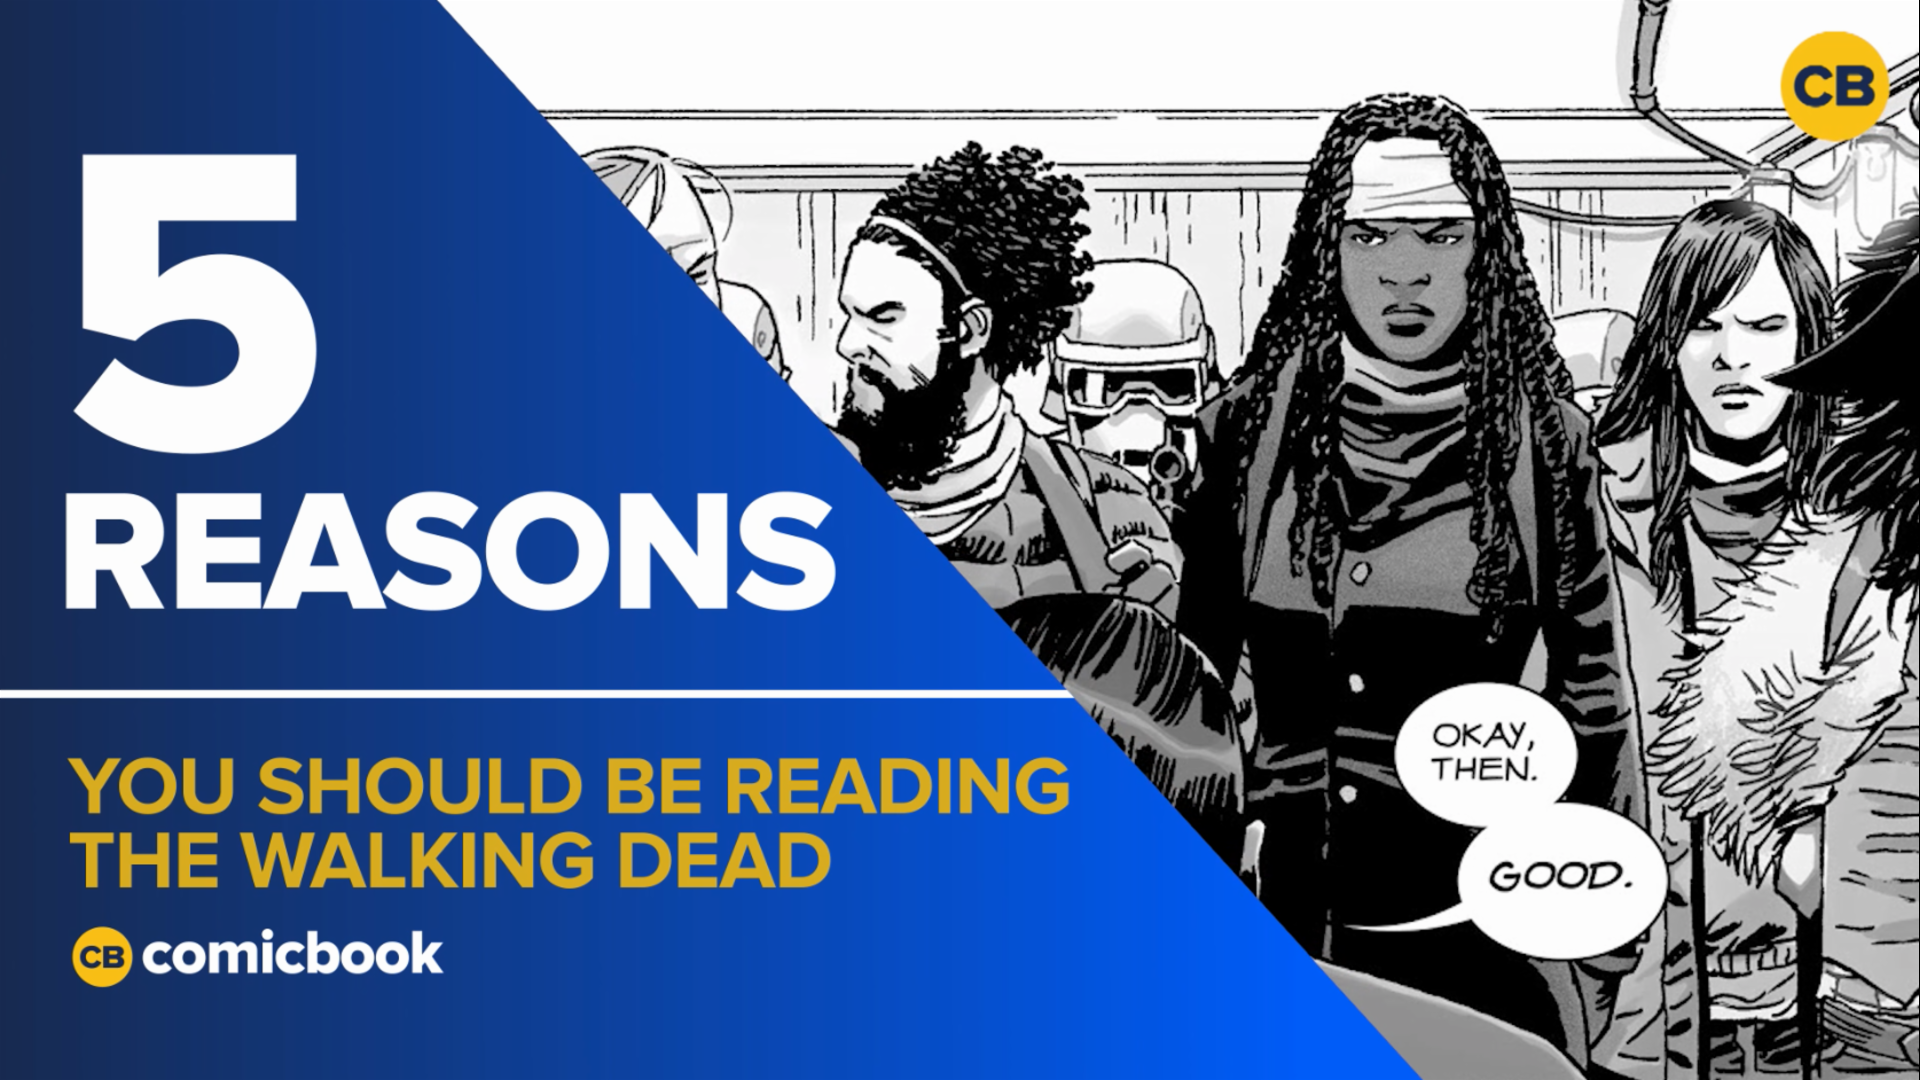 5 Reasons You Should Be Reading The Walking Dead Comics screen capture